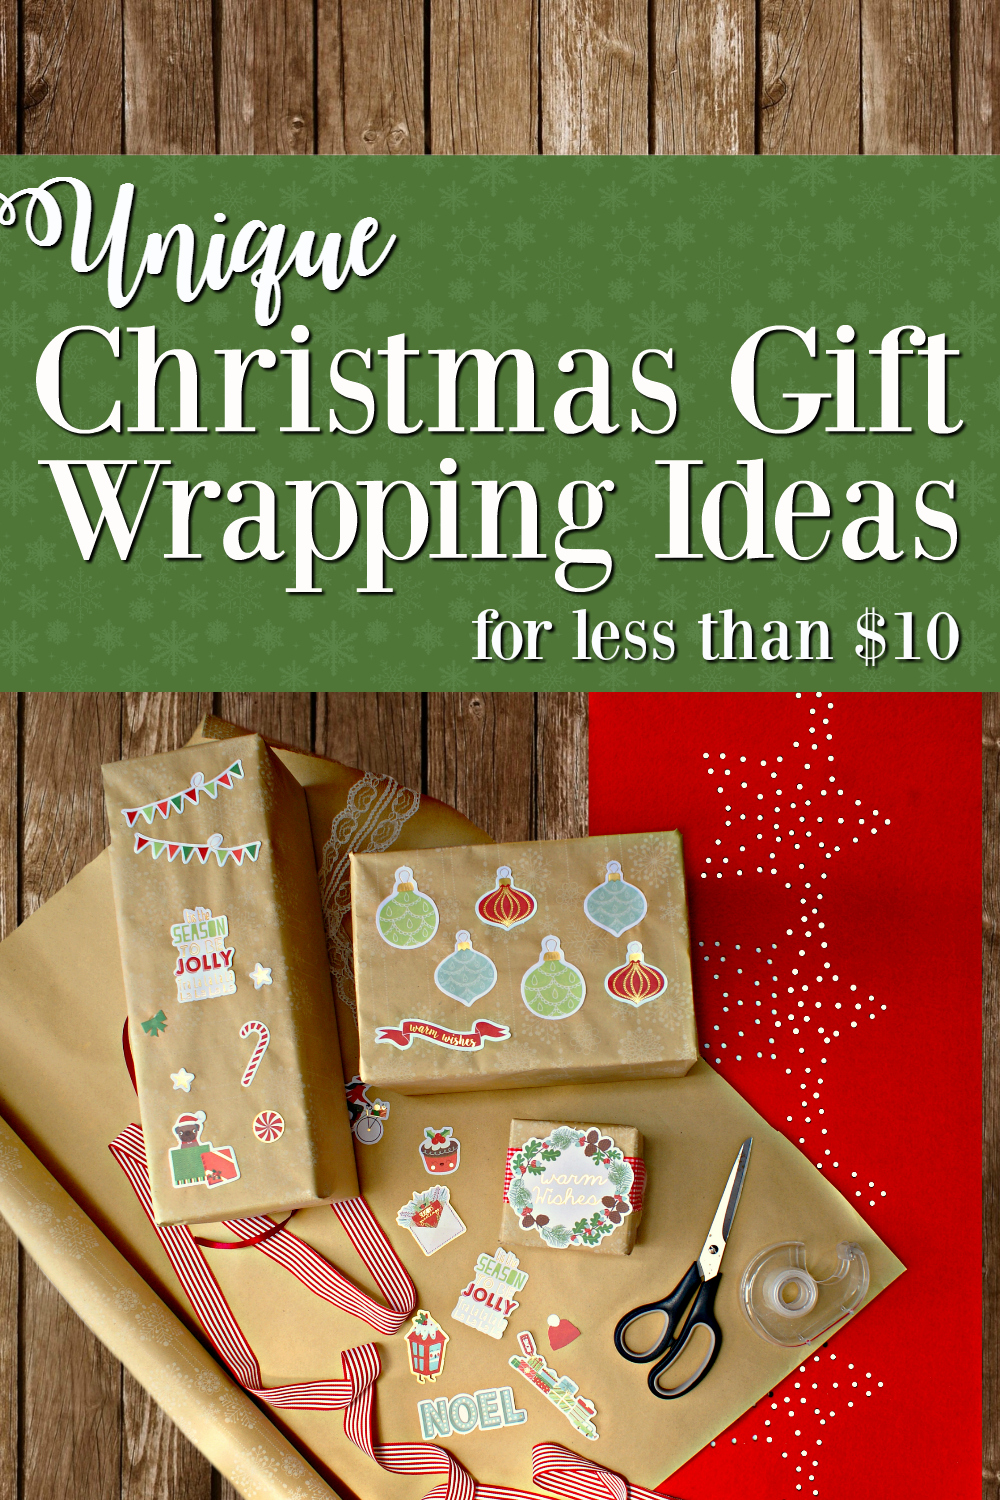 Easy Unique Gift Wrapping Ideas for Christmas - Modern, Vintage, Boho, Rustic Holiday, Black White Gold and Other Beautiful Holiday Ideas, Cheap, Easy, Creative